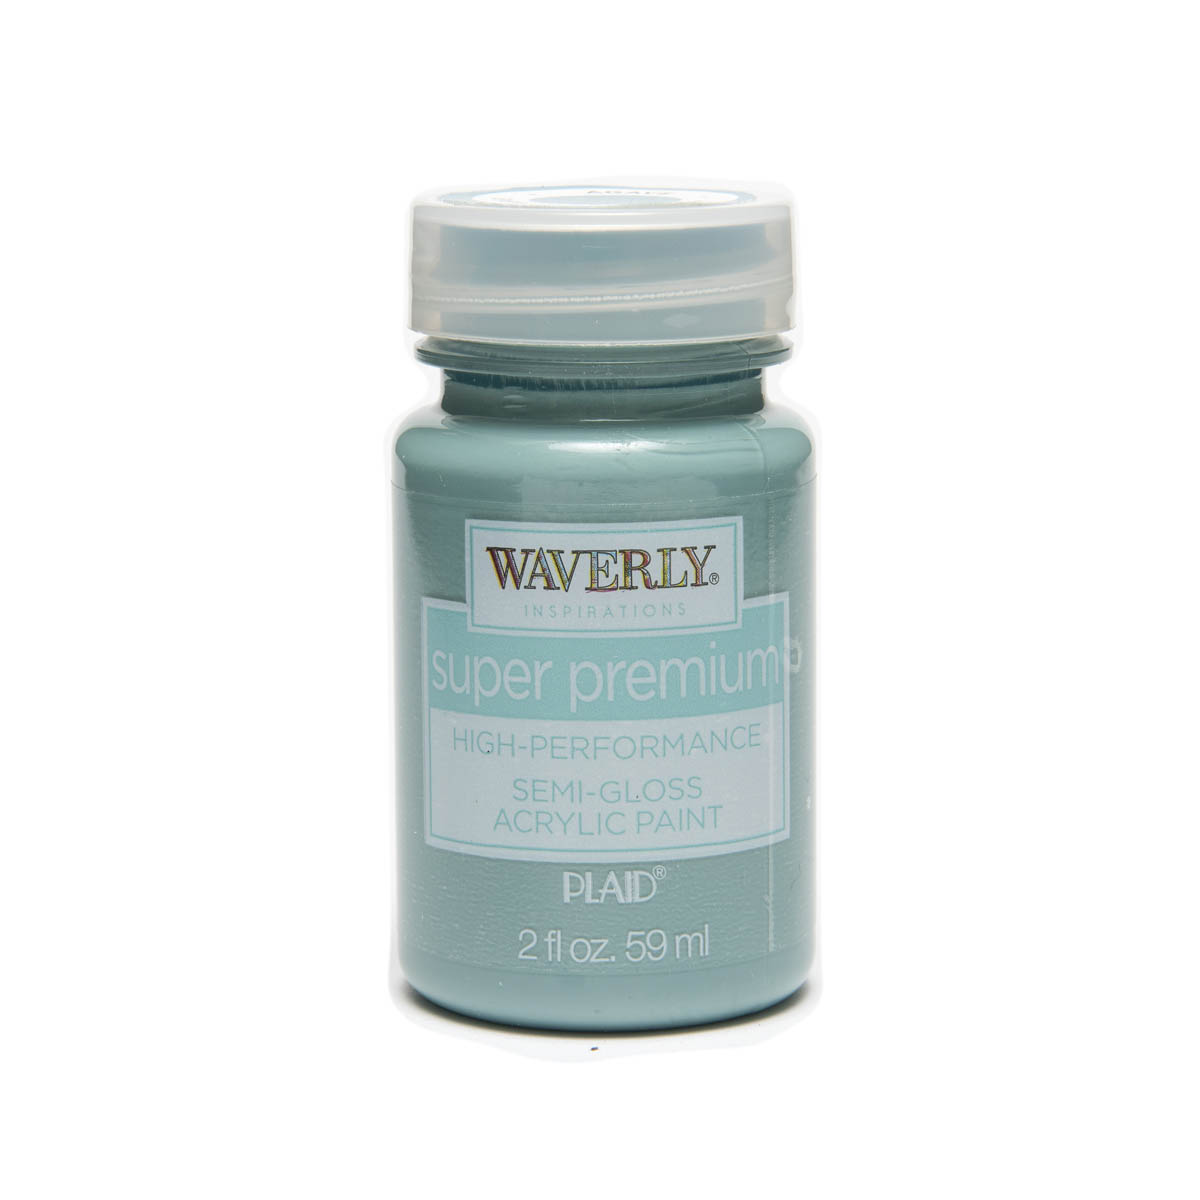 Waverly ® Inspirations Super Premium Semi-Gloss Acrylic Paint - Agave, 2 oz. - 60641E